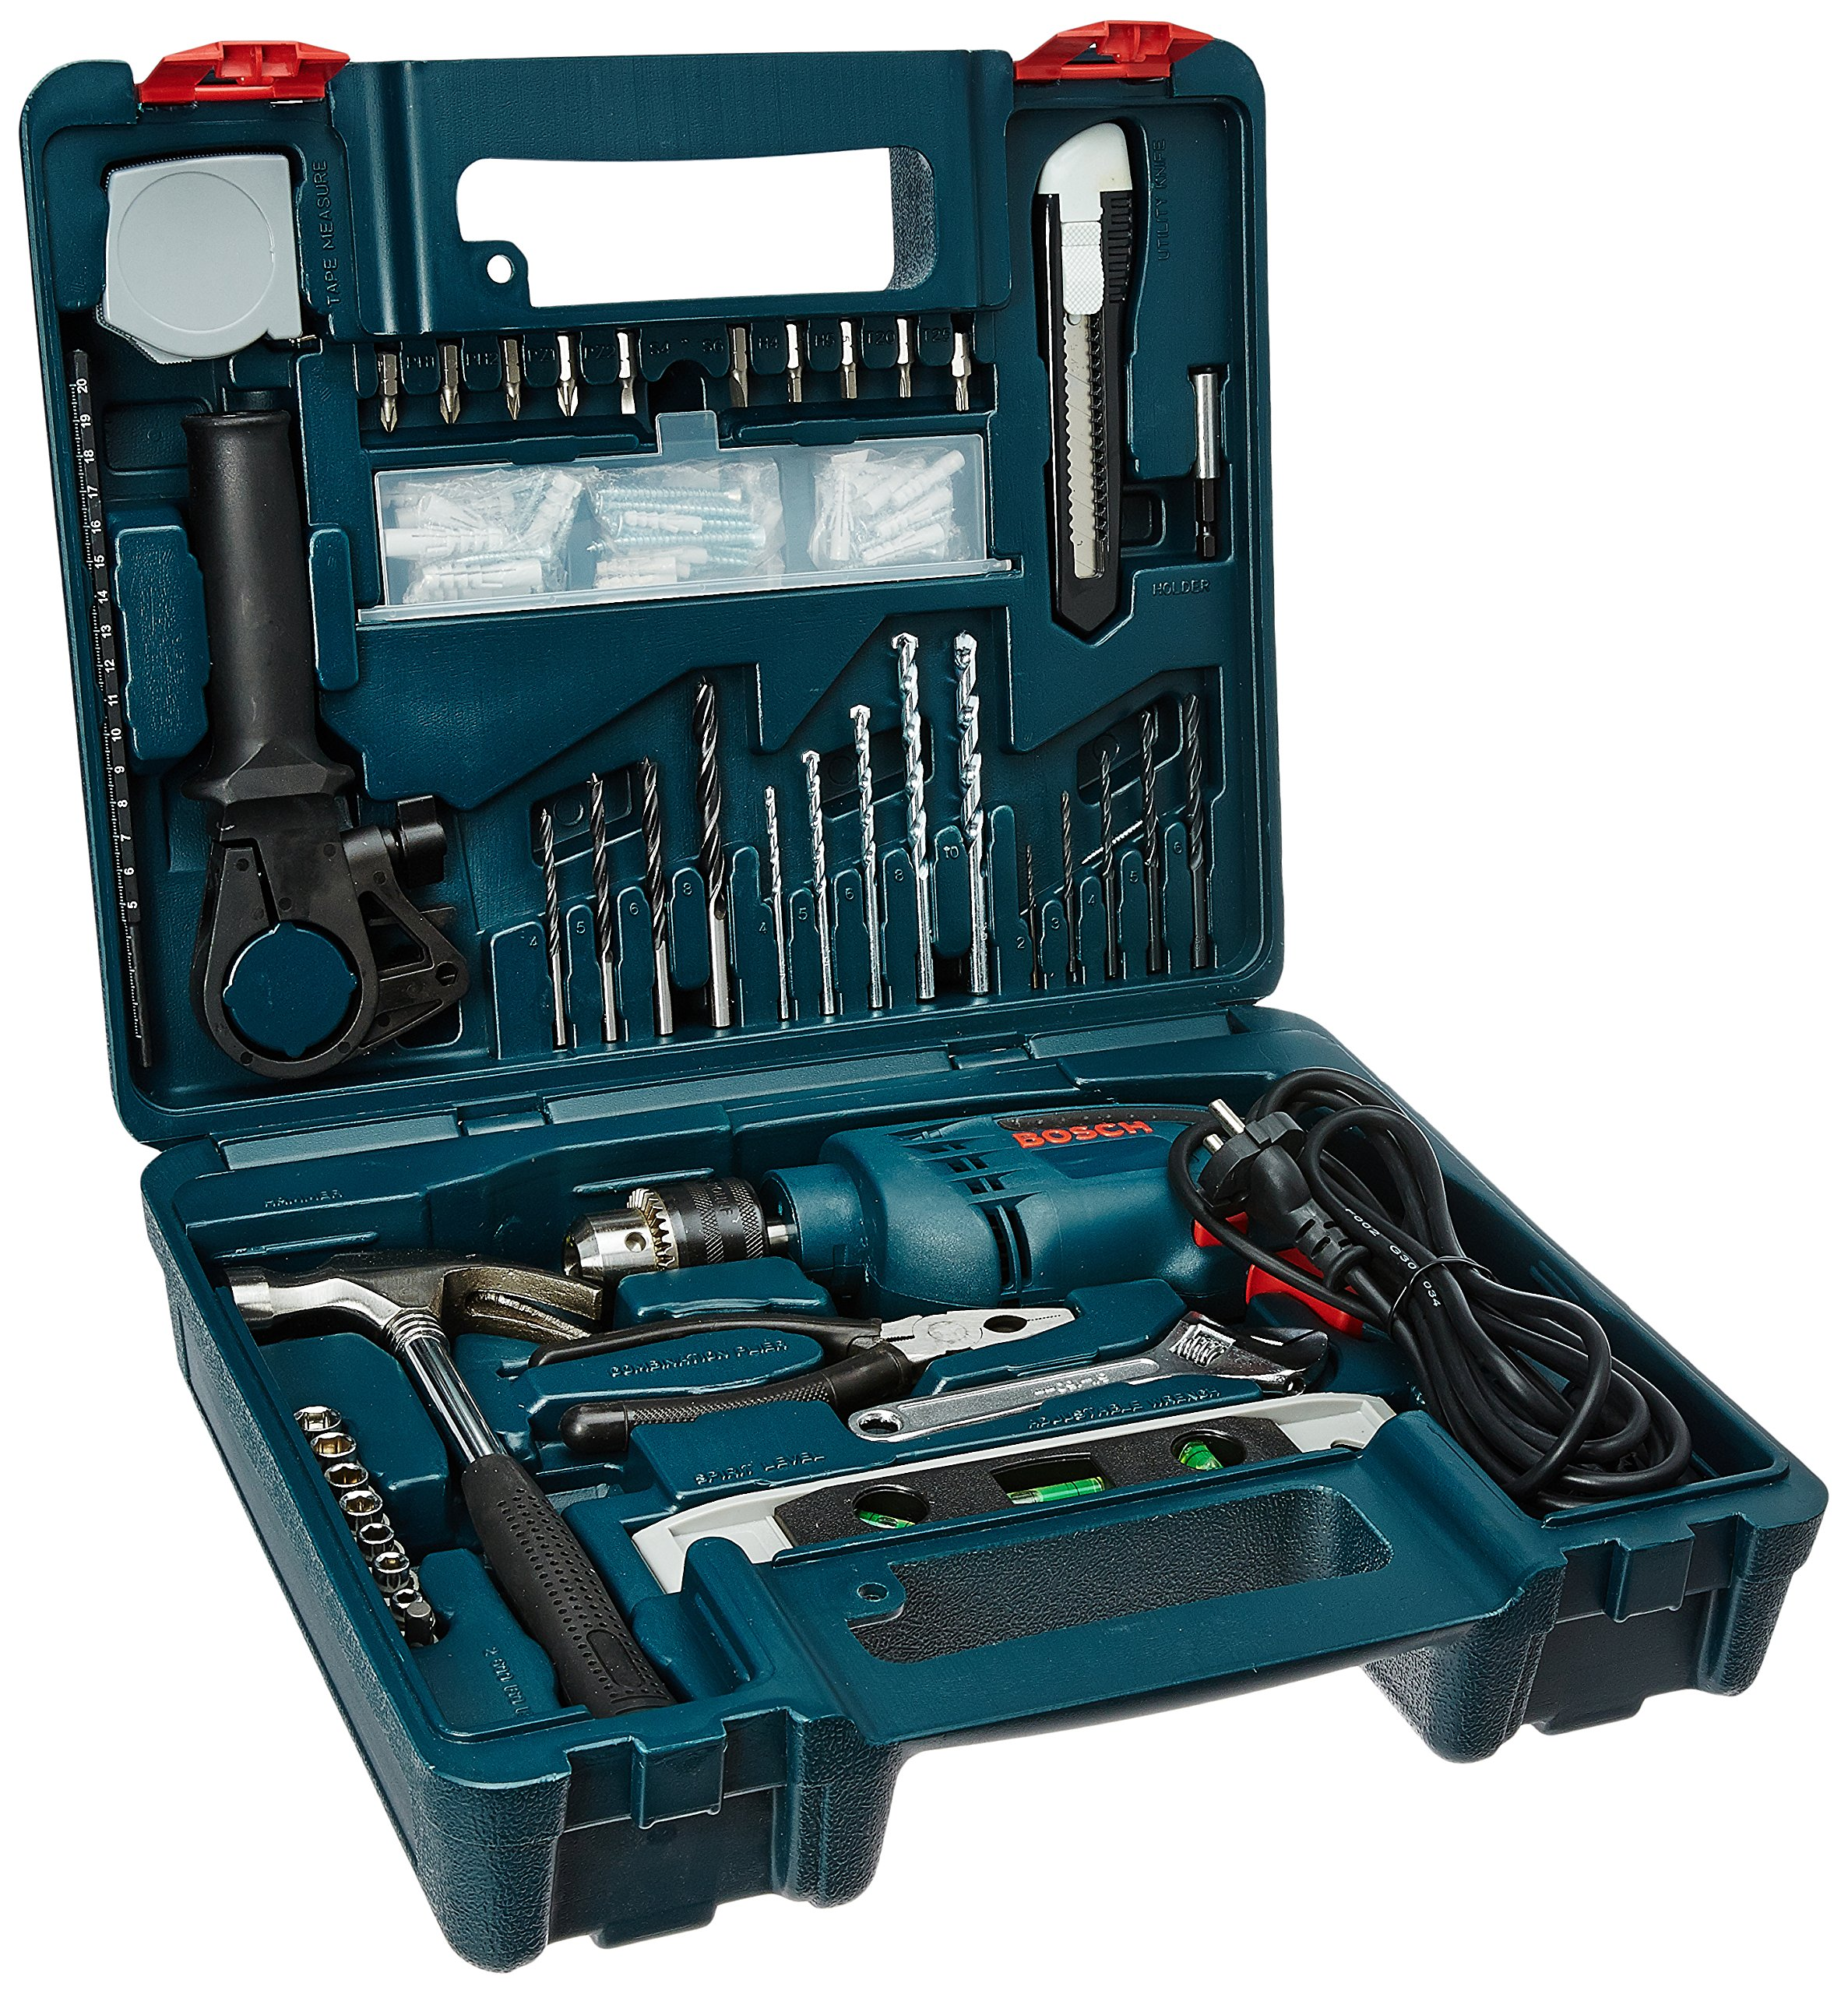 Bosch GSB 600 RE 13mm 600 Watt Smart Drill Kit product image